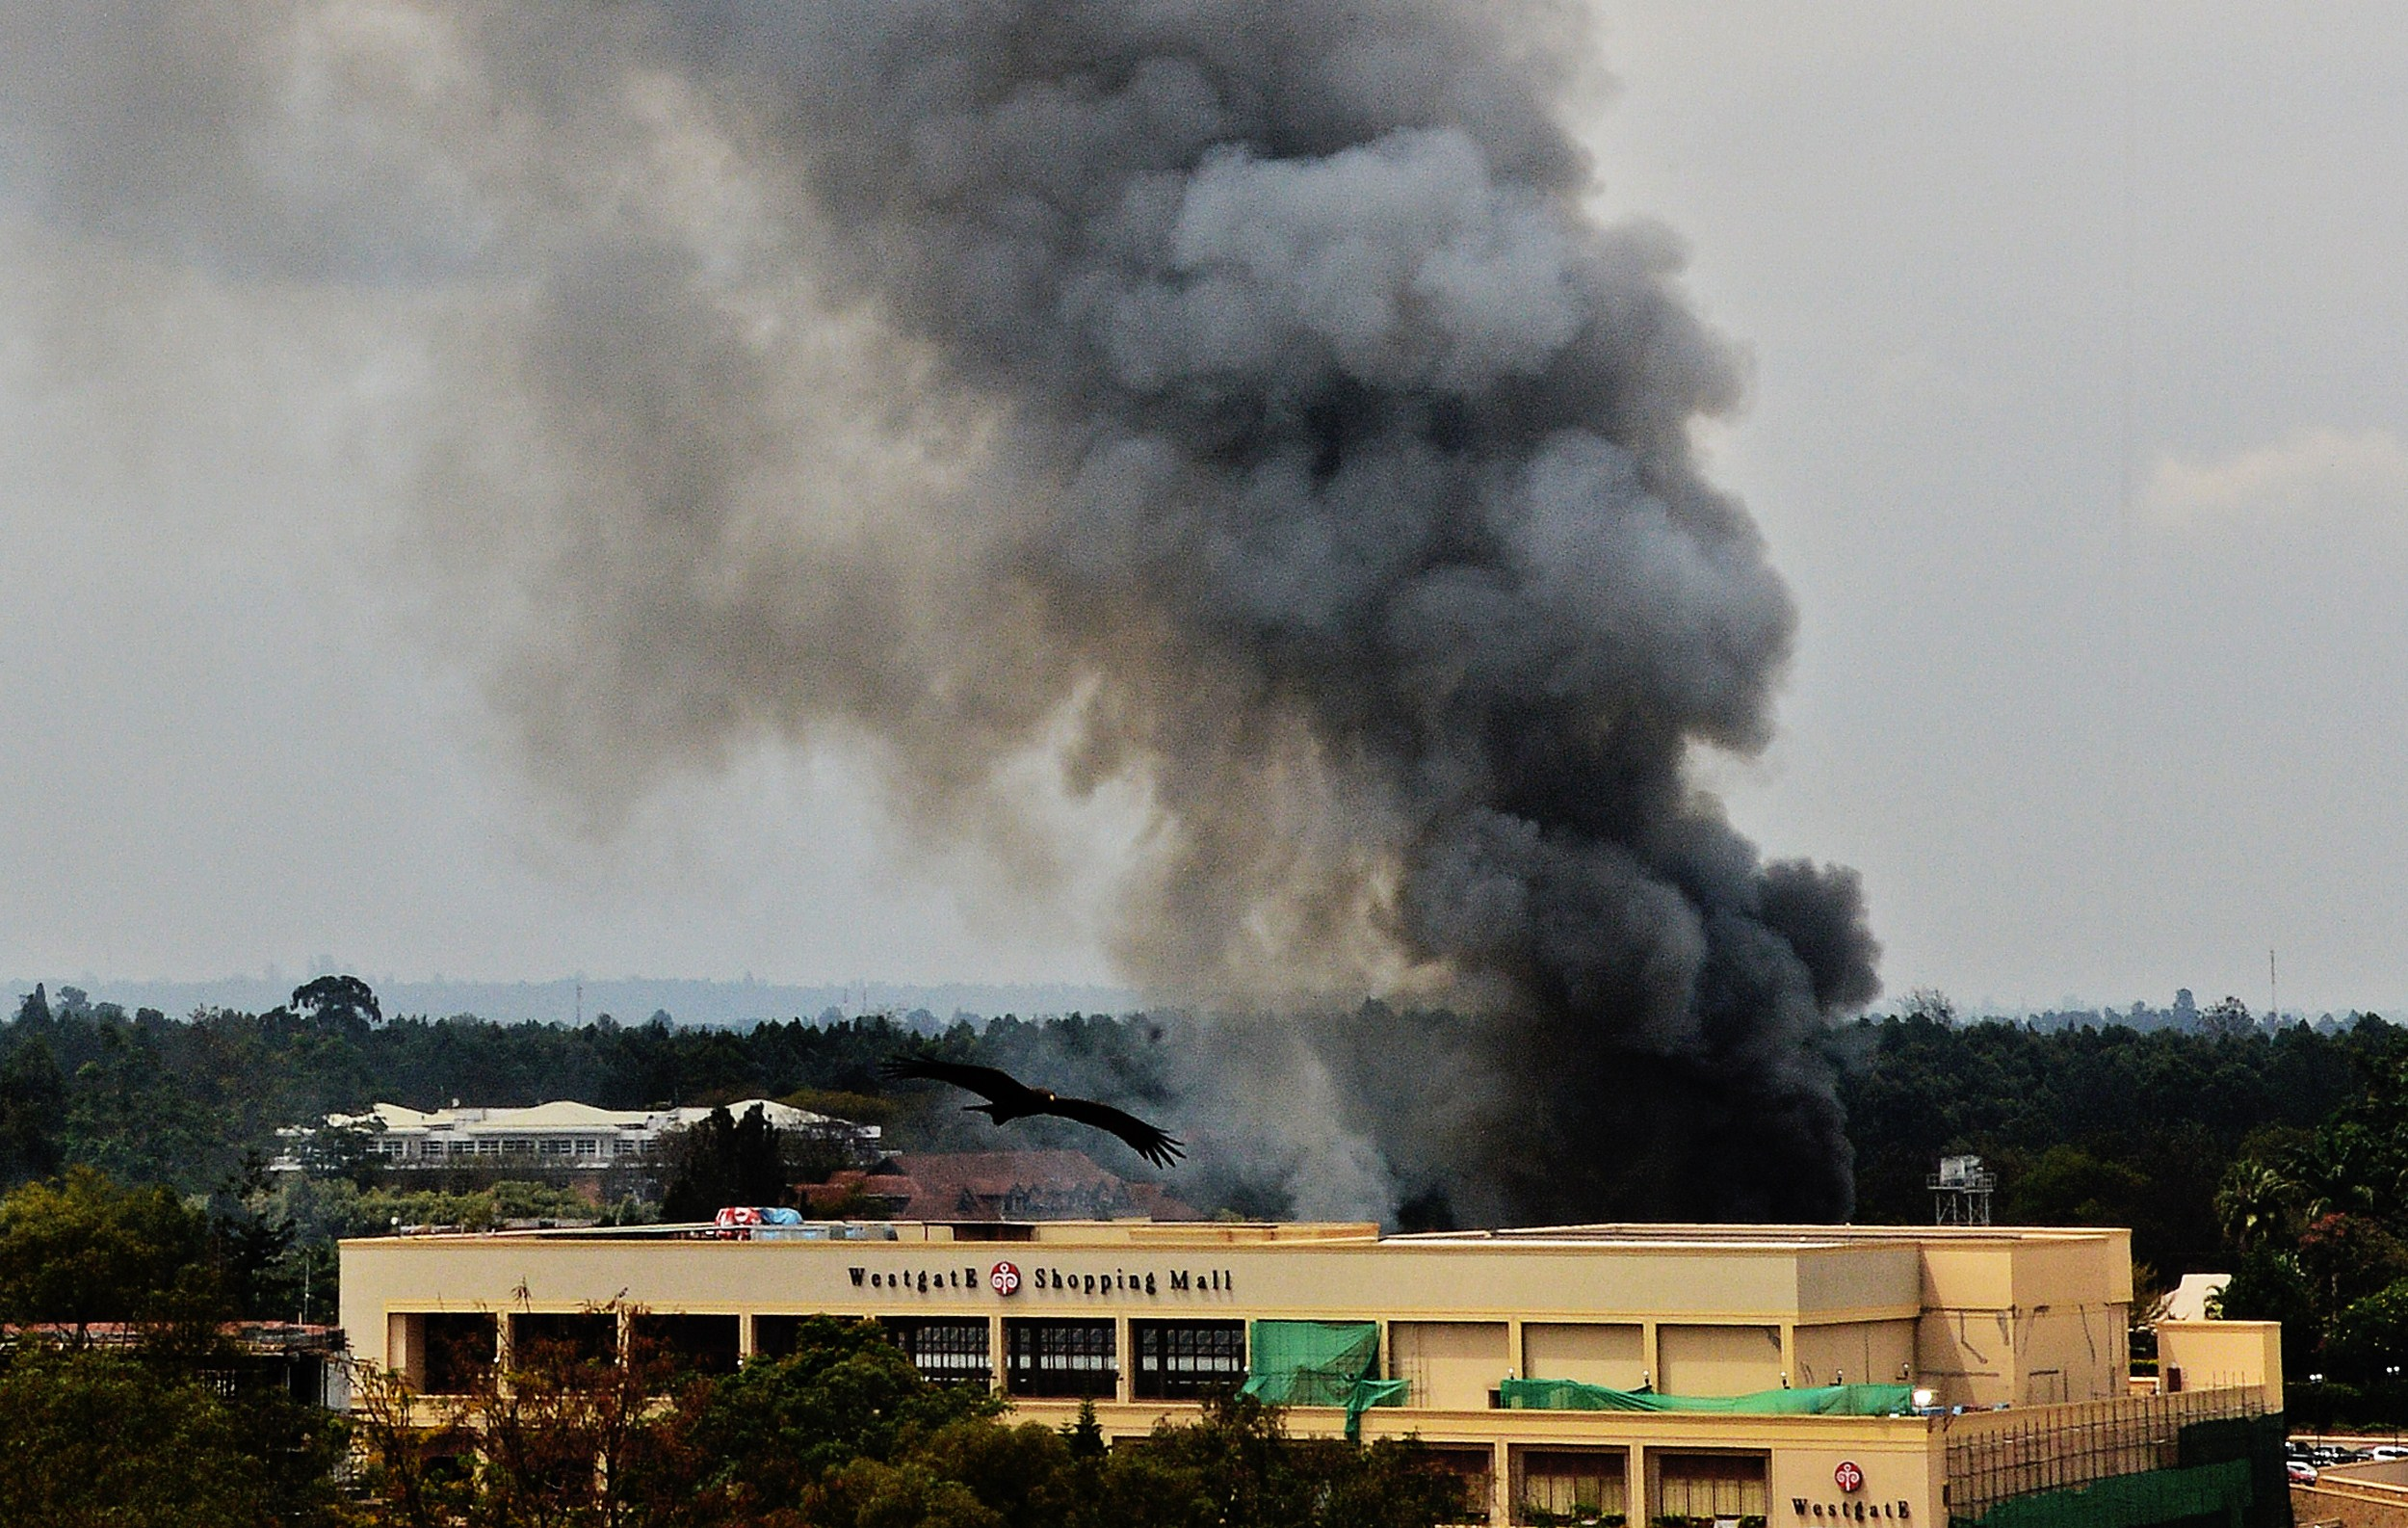 Smoke rises from the Westgate mall in Nairobi on Monday (AFP PHOTO / CARL DE SOUZA)